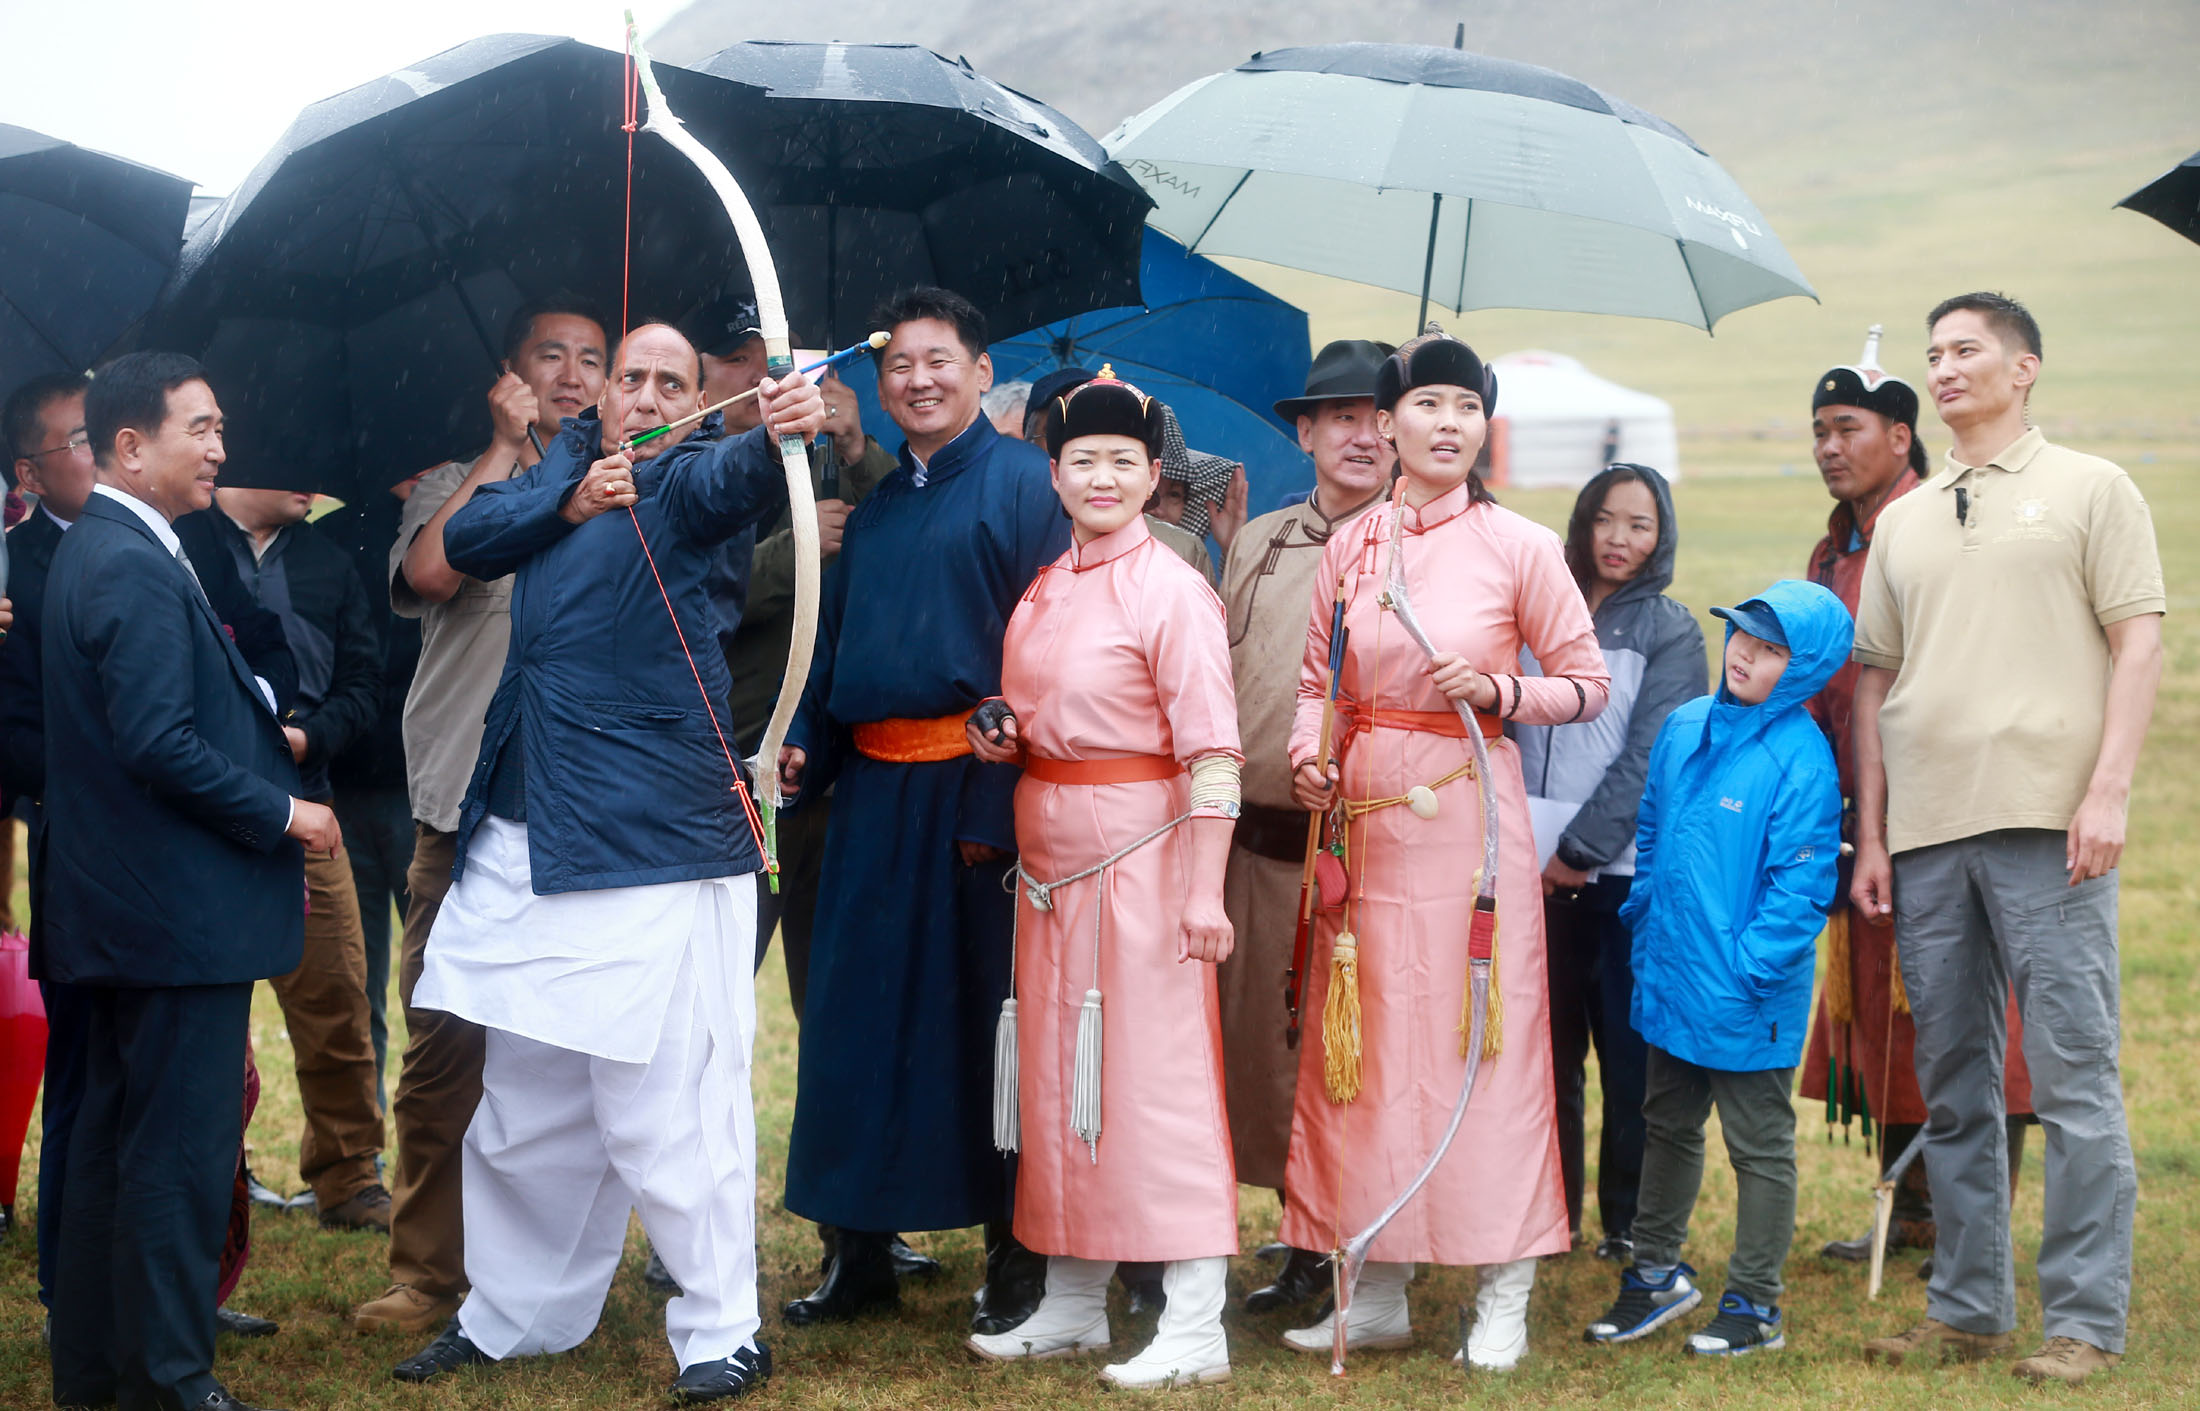 The Union Home Minister, Shri Rajnath Singh witnessing the Mini-Naadam festival of traditional sports and culture organised in the rural areas of Ulaanbaatar, in Mongolia on June 23, 2018.   The Prime Minister of Mongolia, Mr. Ukhnaagin Khurelsukh is also seen.